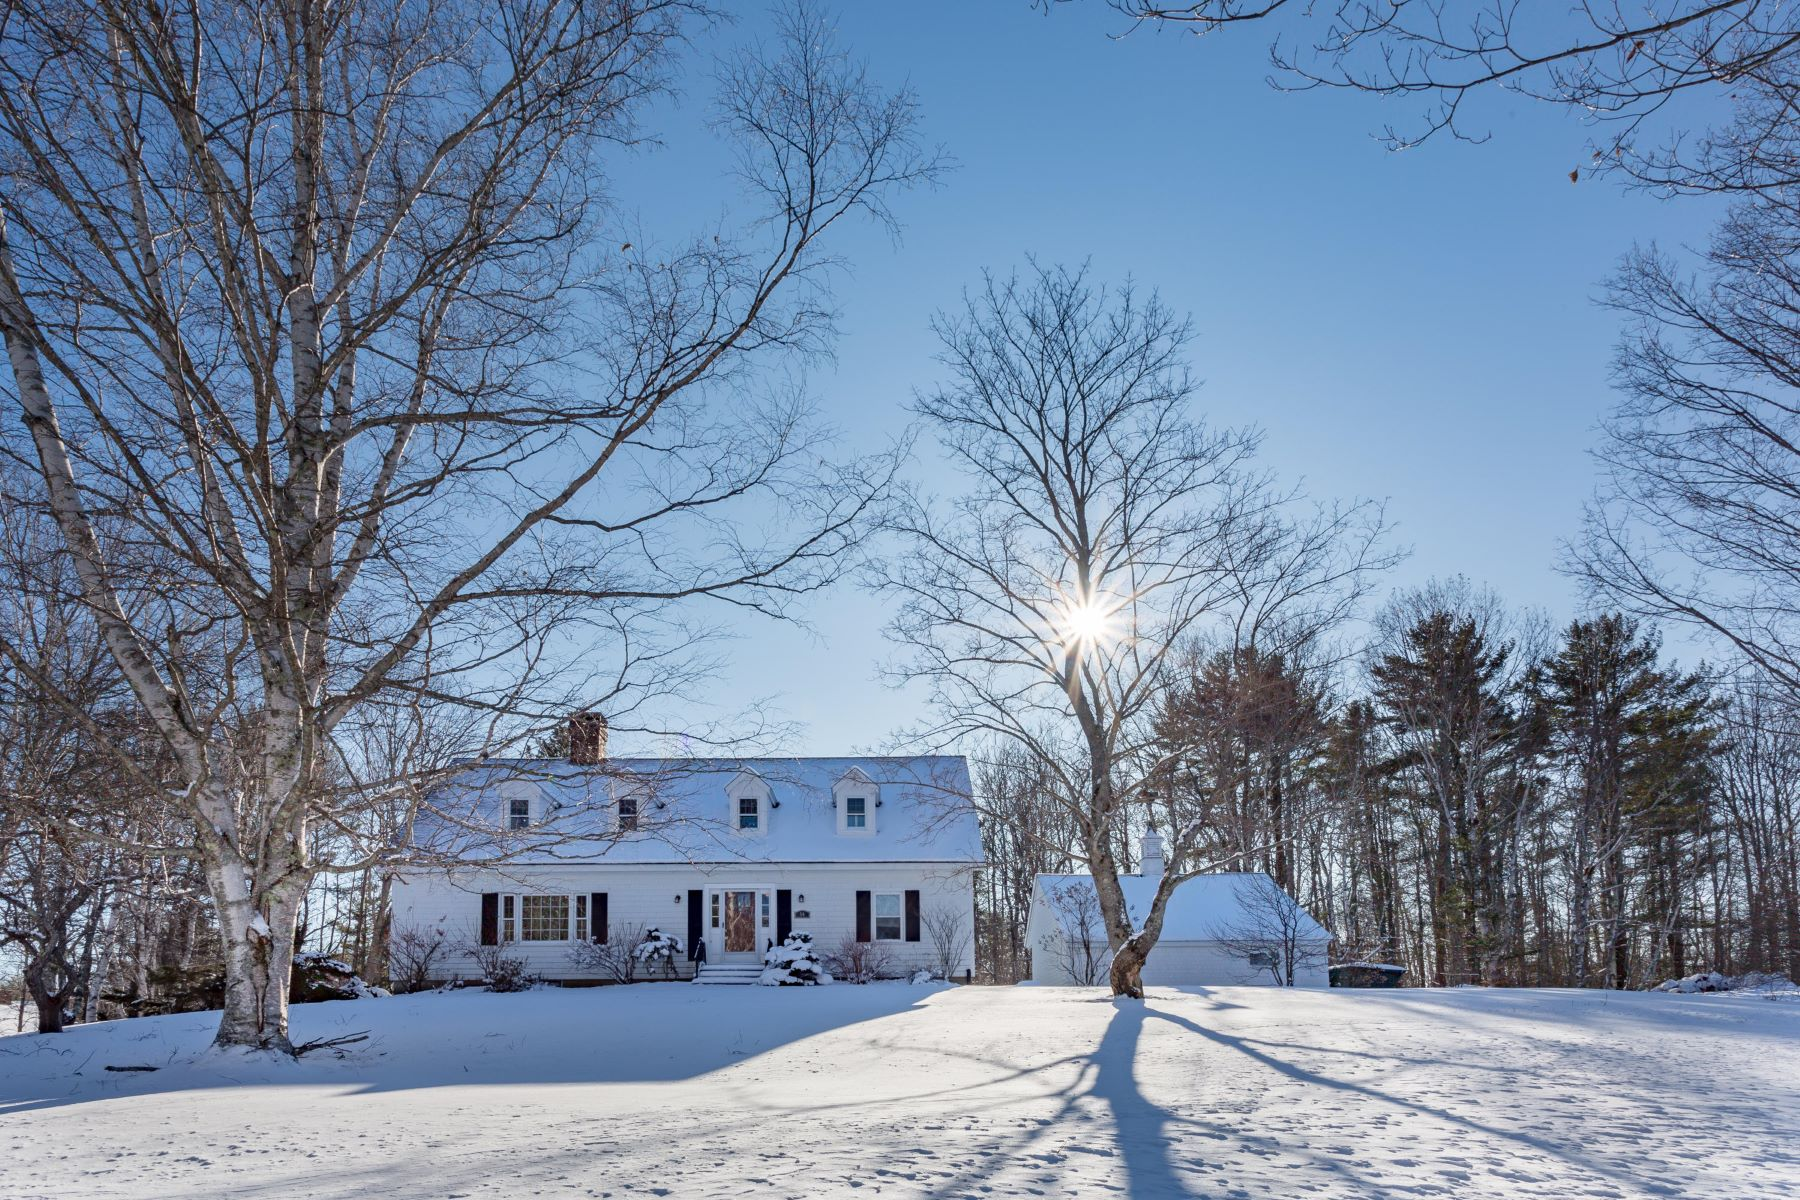 Single Family Homes for Sale at 50 Molyneaux Road Camden, Maine 04843 United States